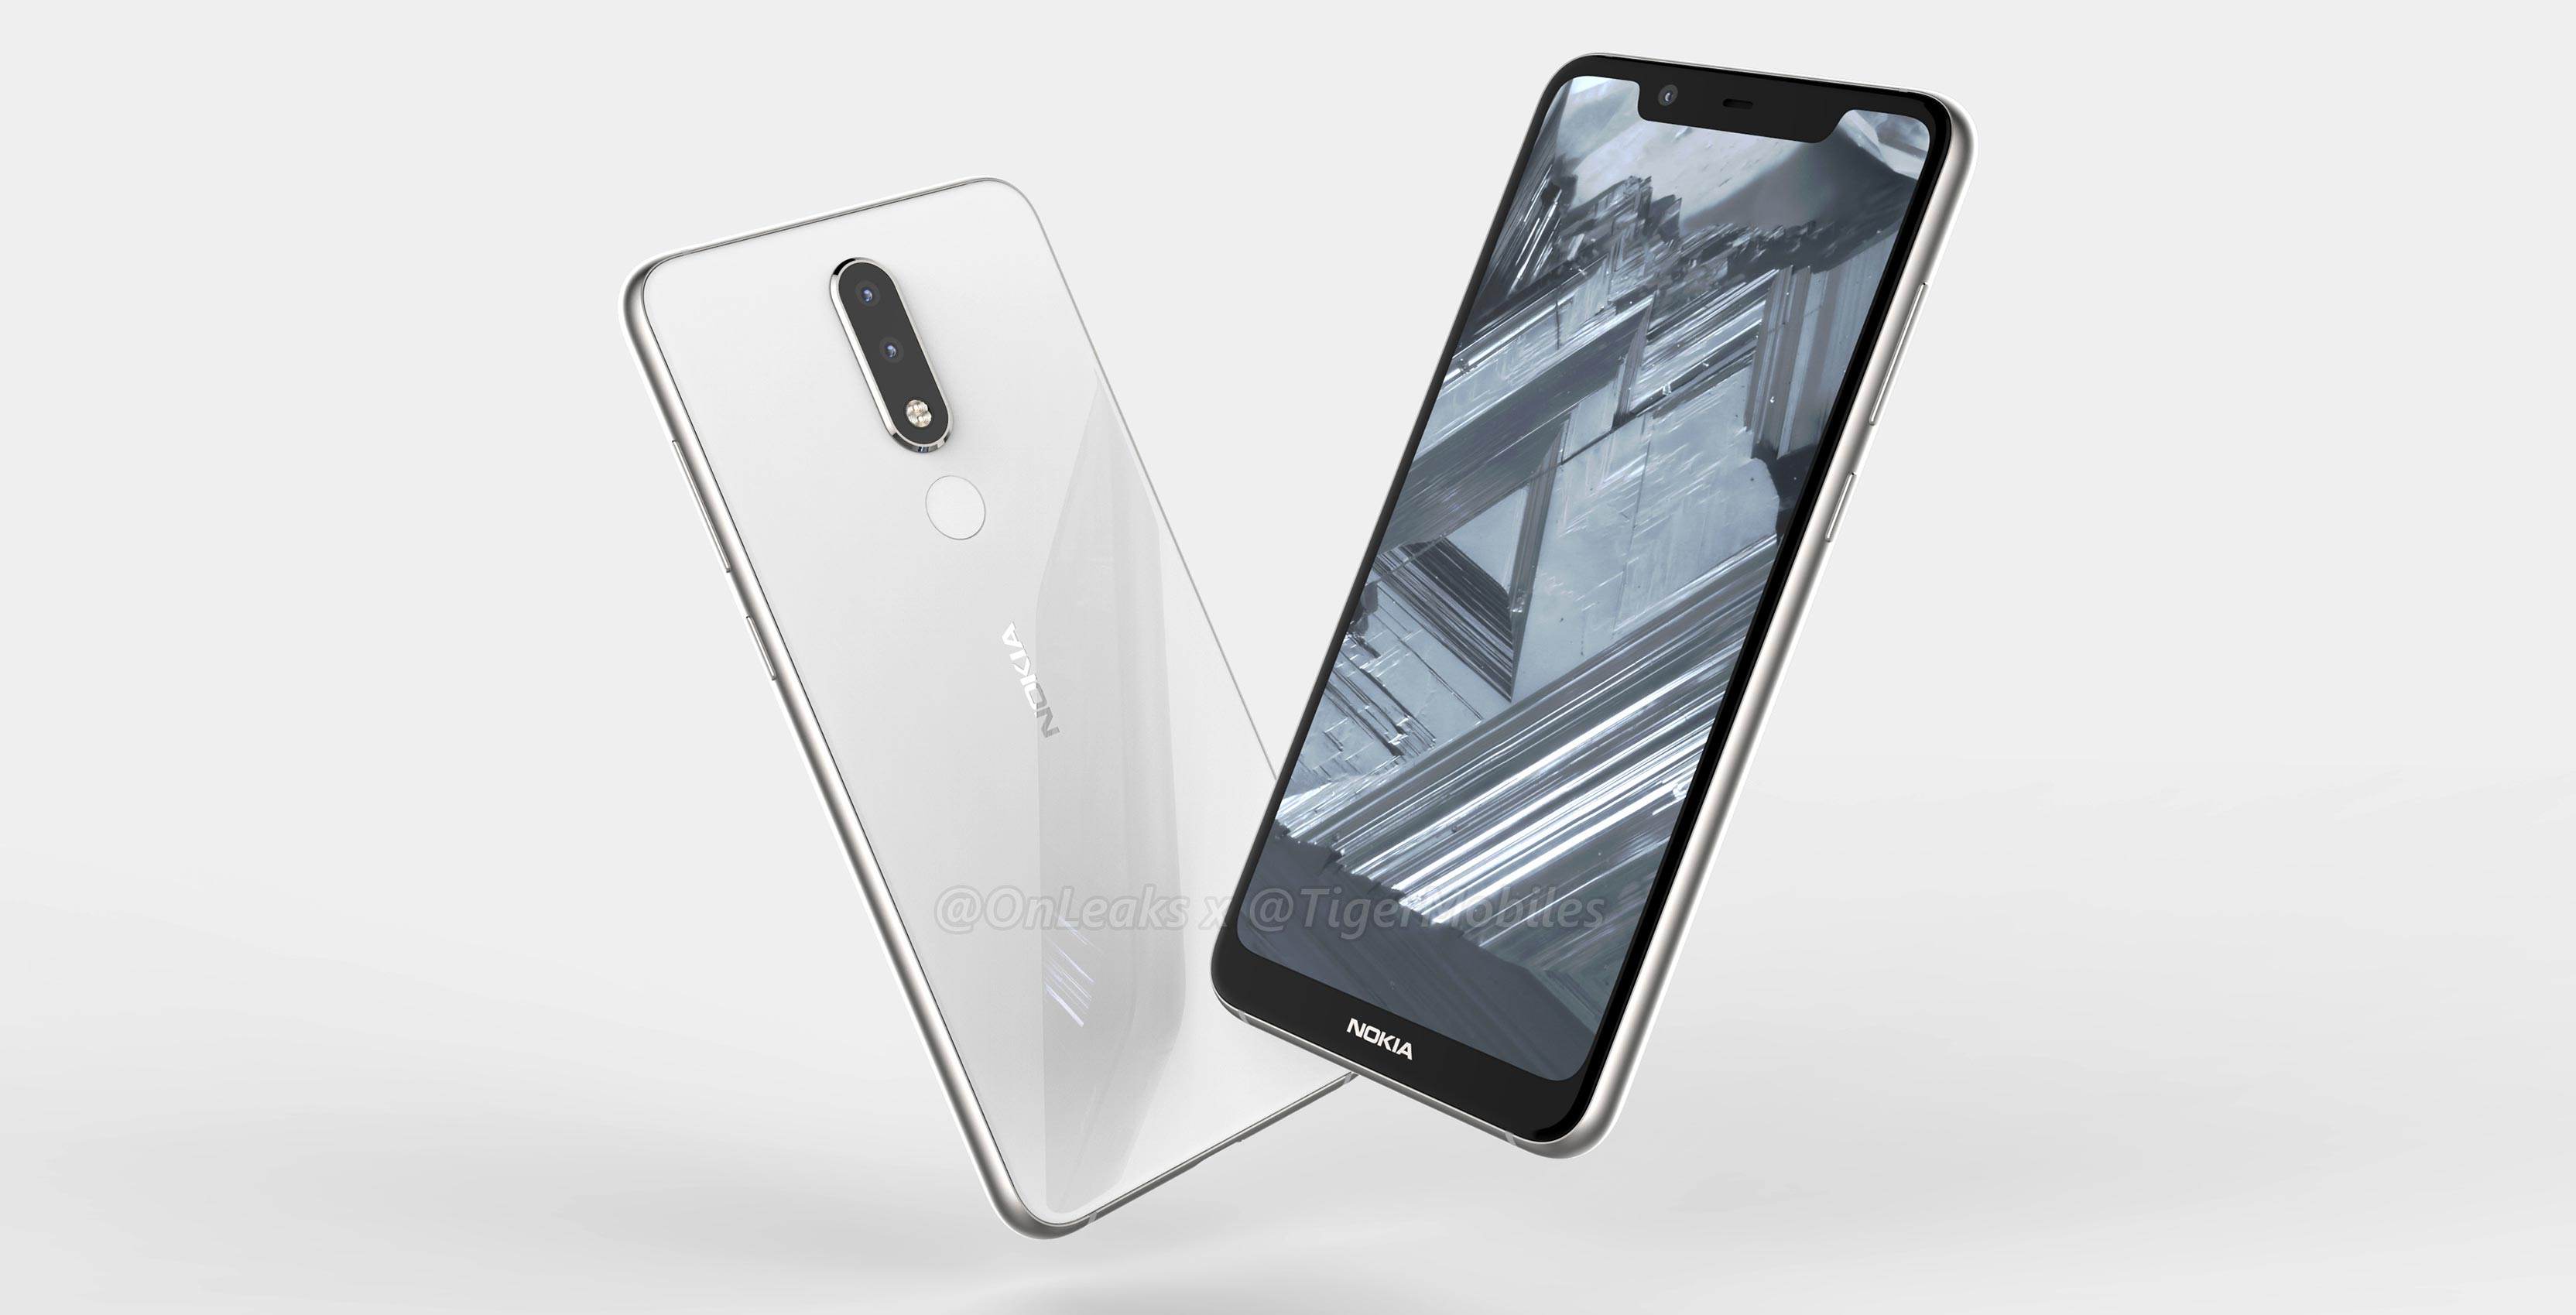 the nokia 5.1 plus render